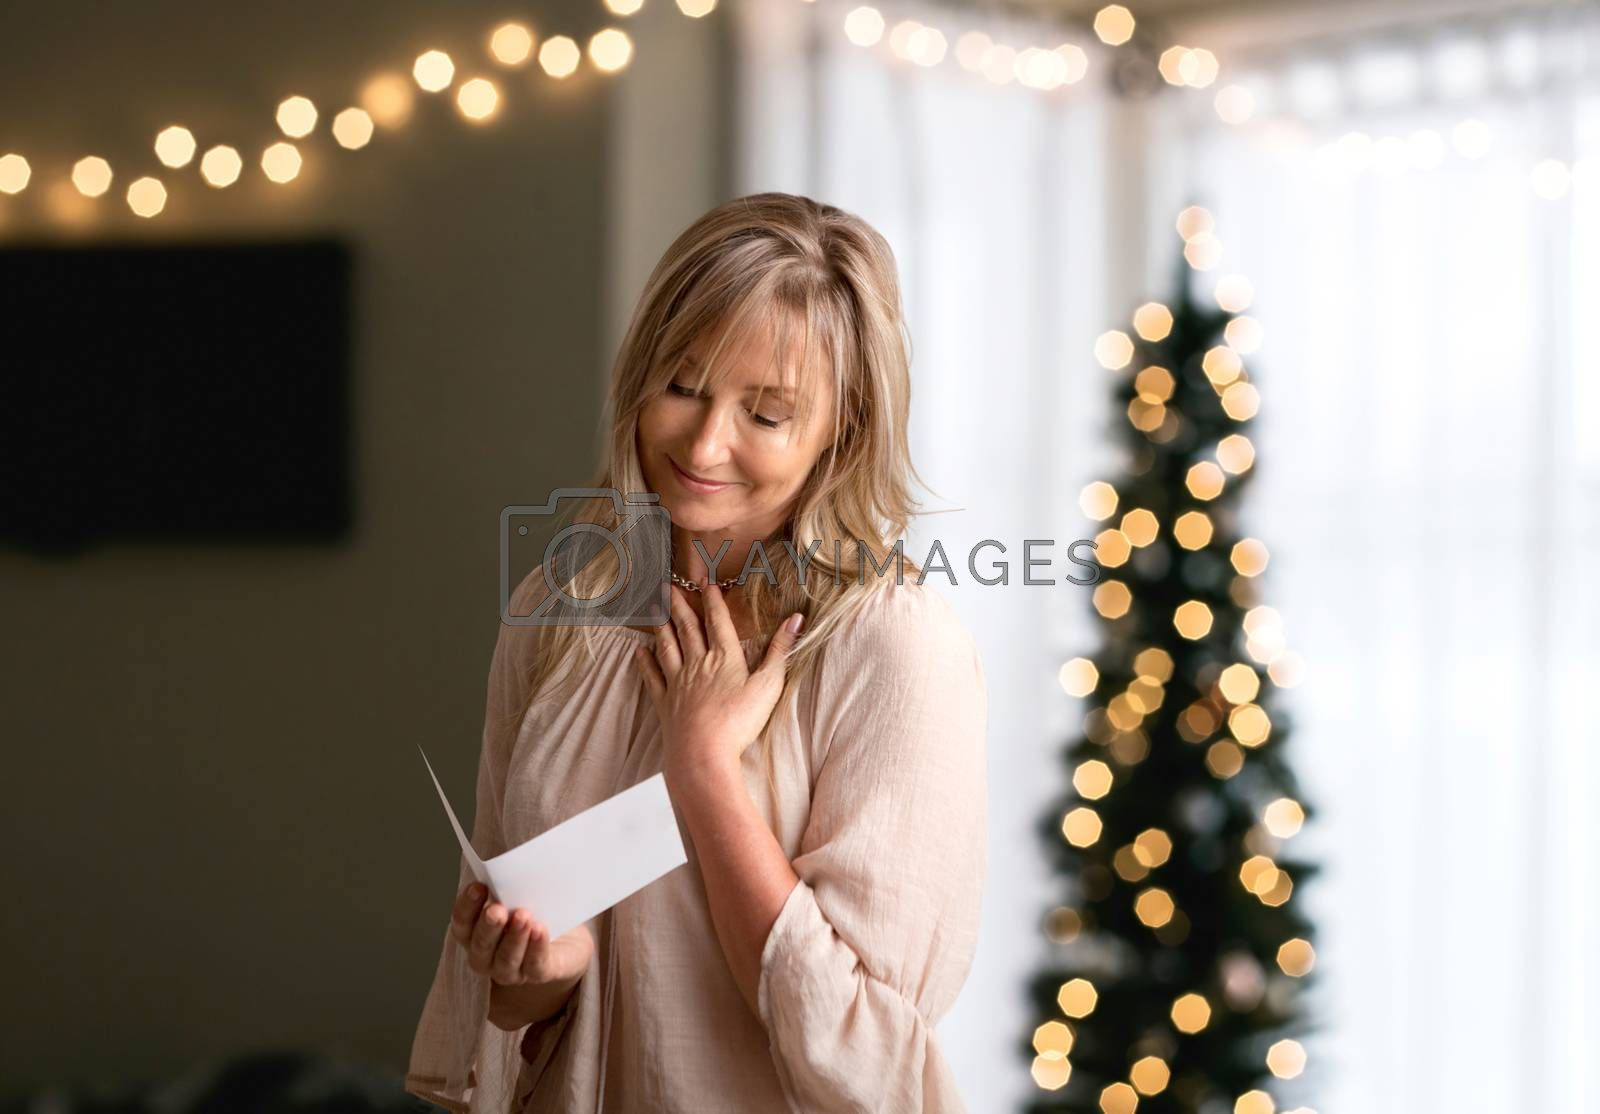 Woman reading a heartfelt message, note, book or card.   She is smiling and has her hand to heart.